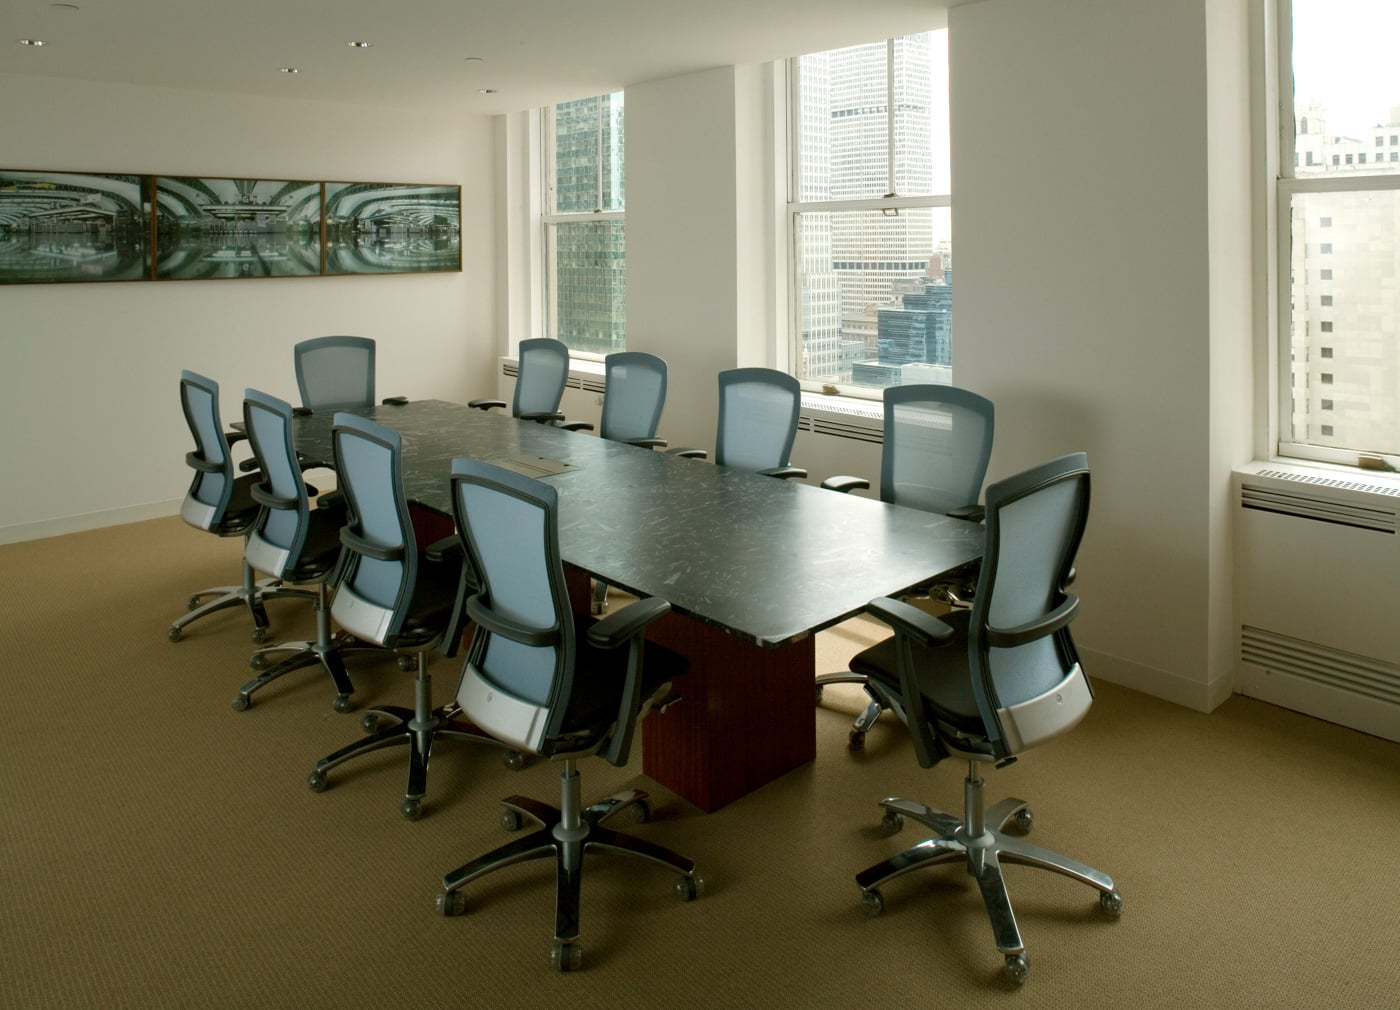 Hudson Housing Capital conference room - project by Reddymade Architecture & Design